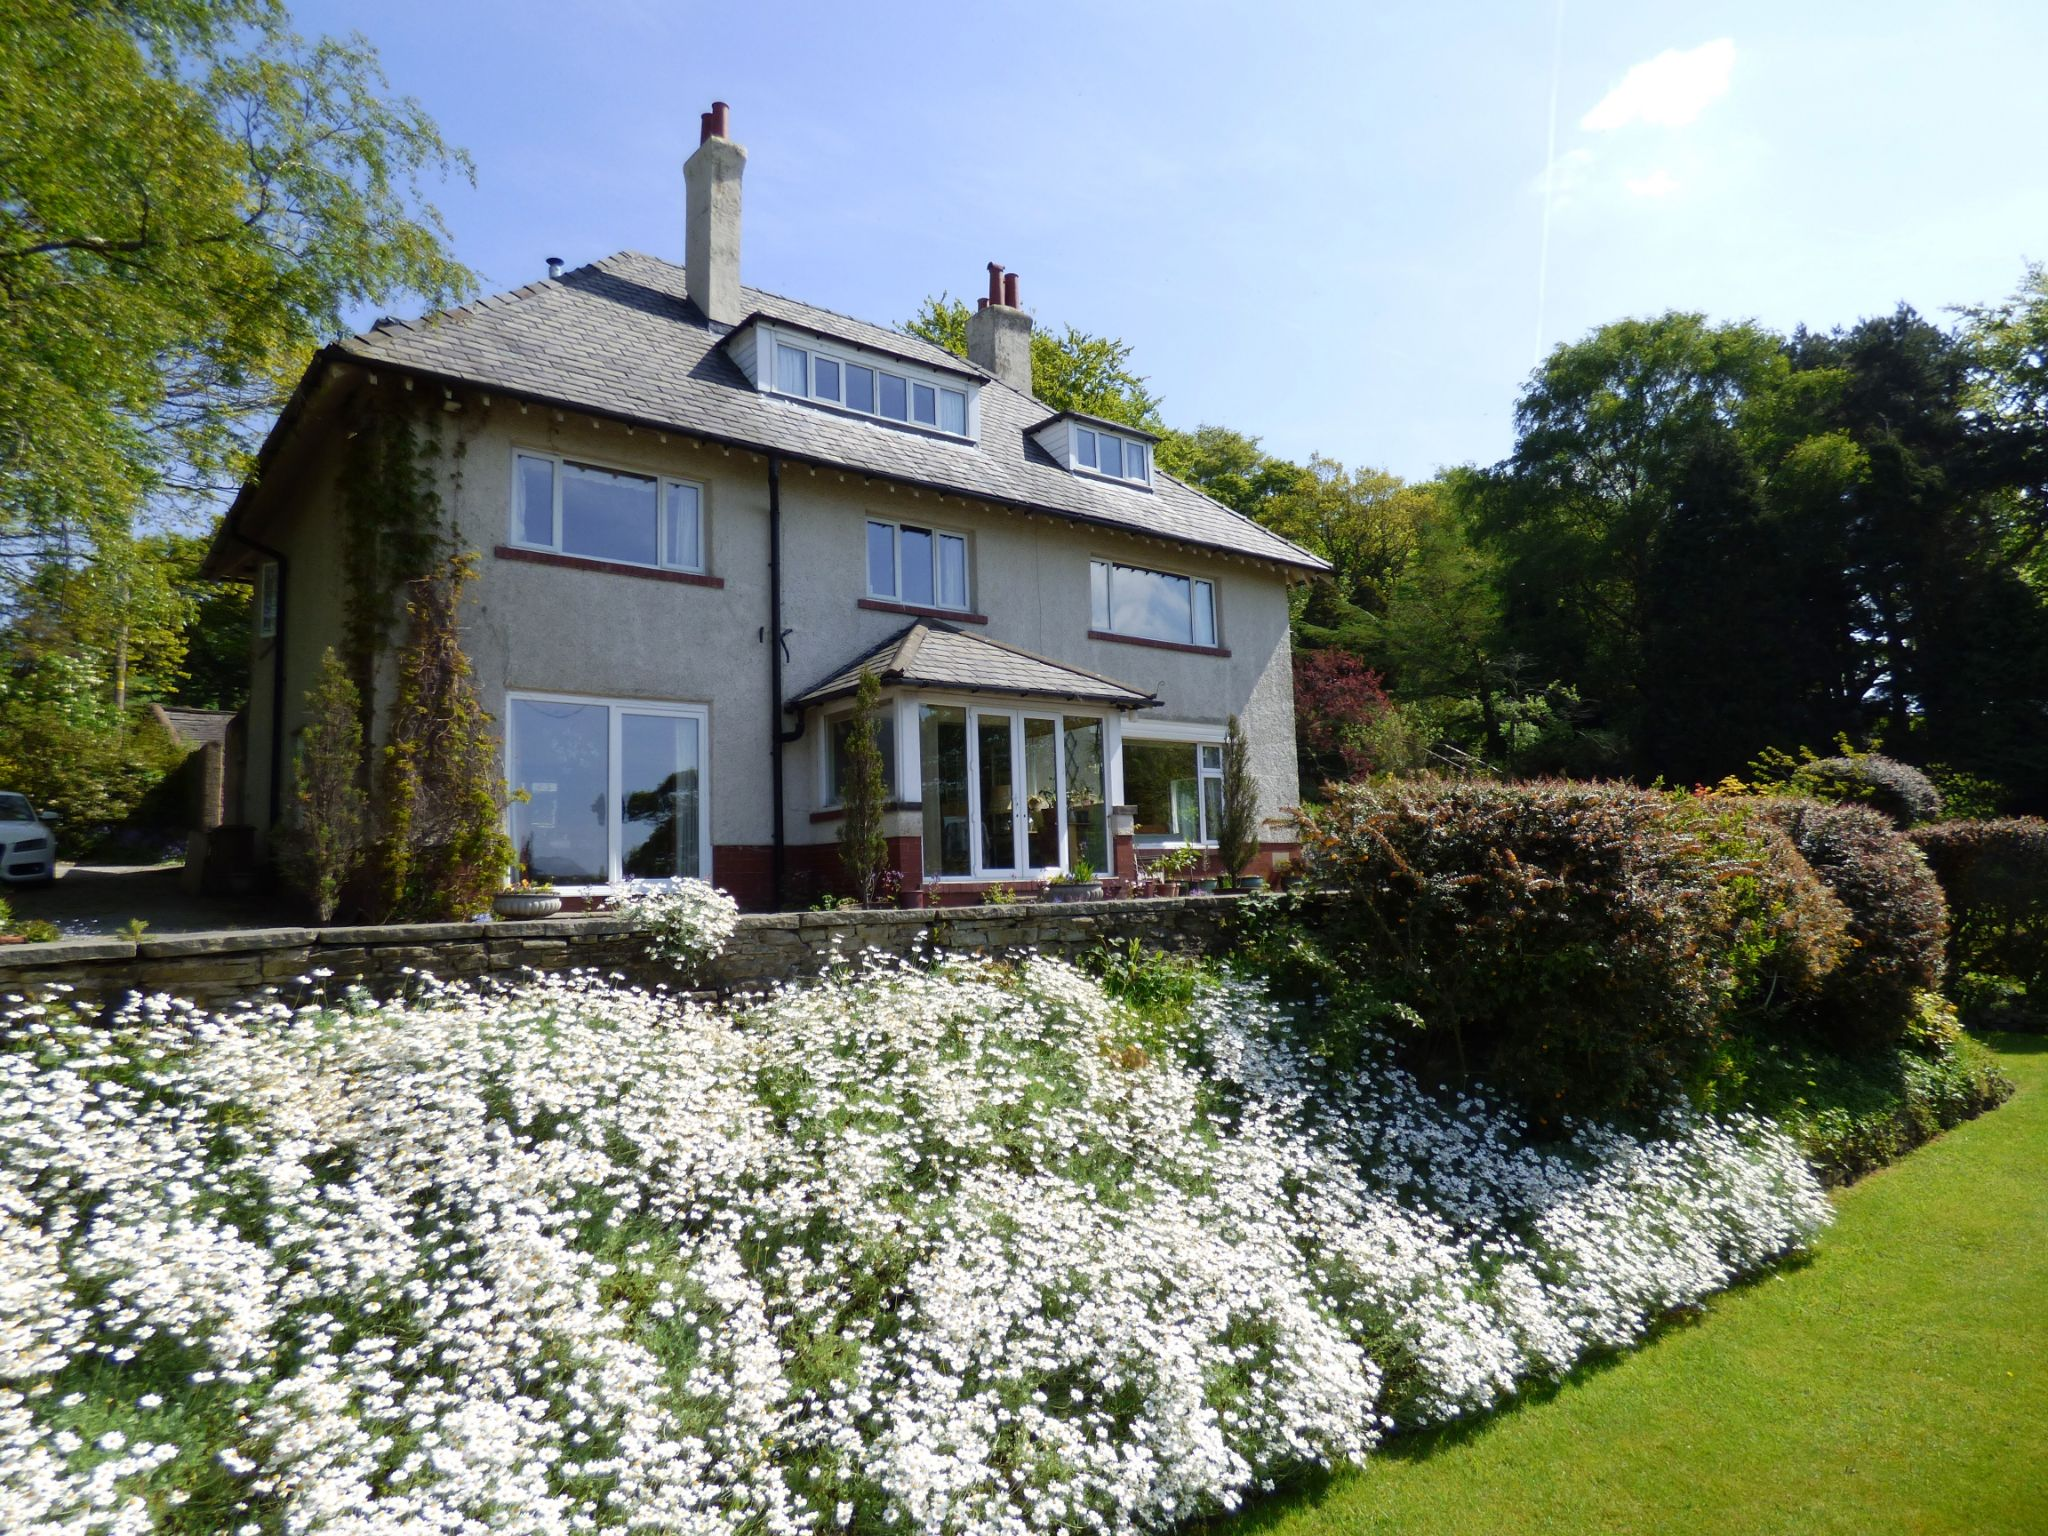 7 Bedroom Detached House For Sale - Photograph 1